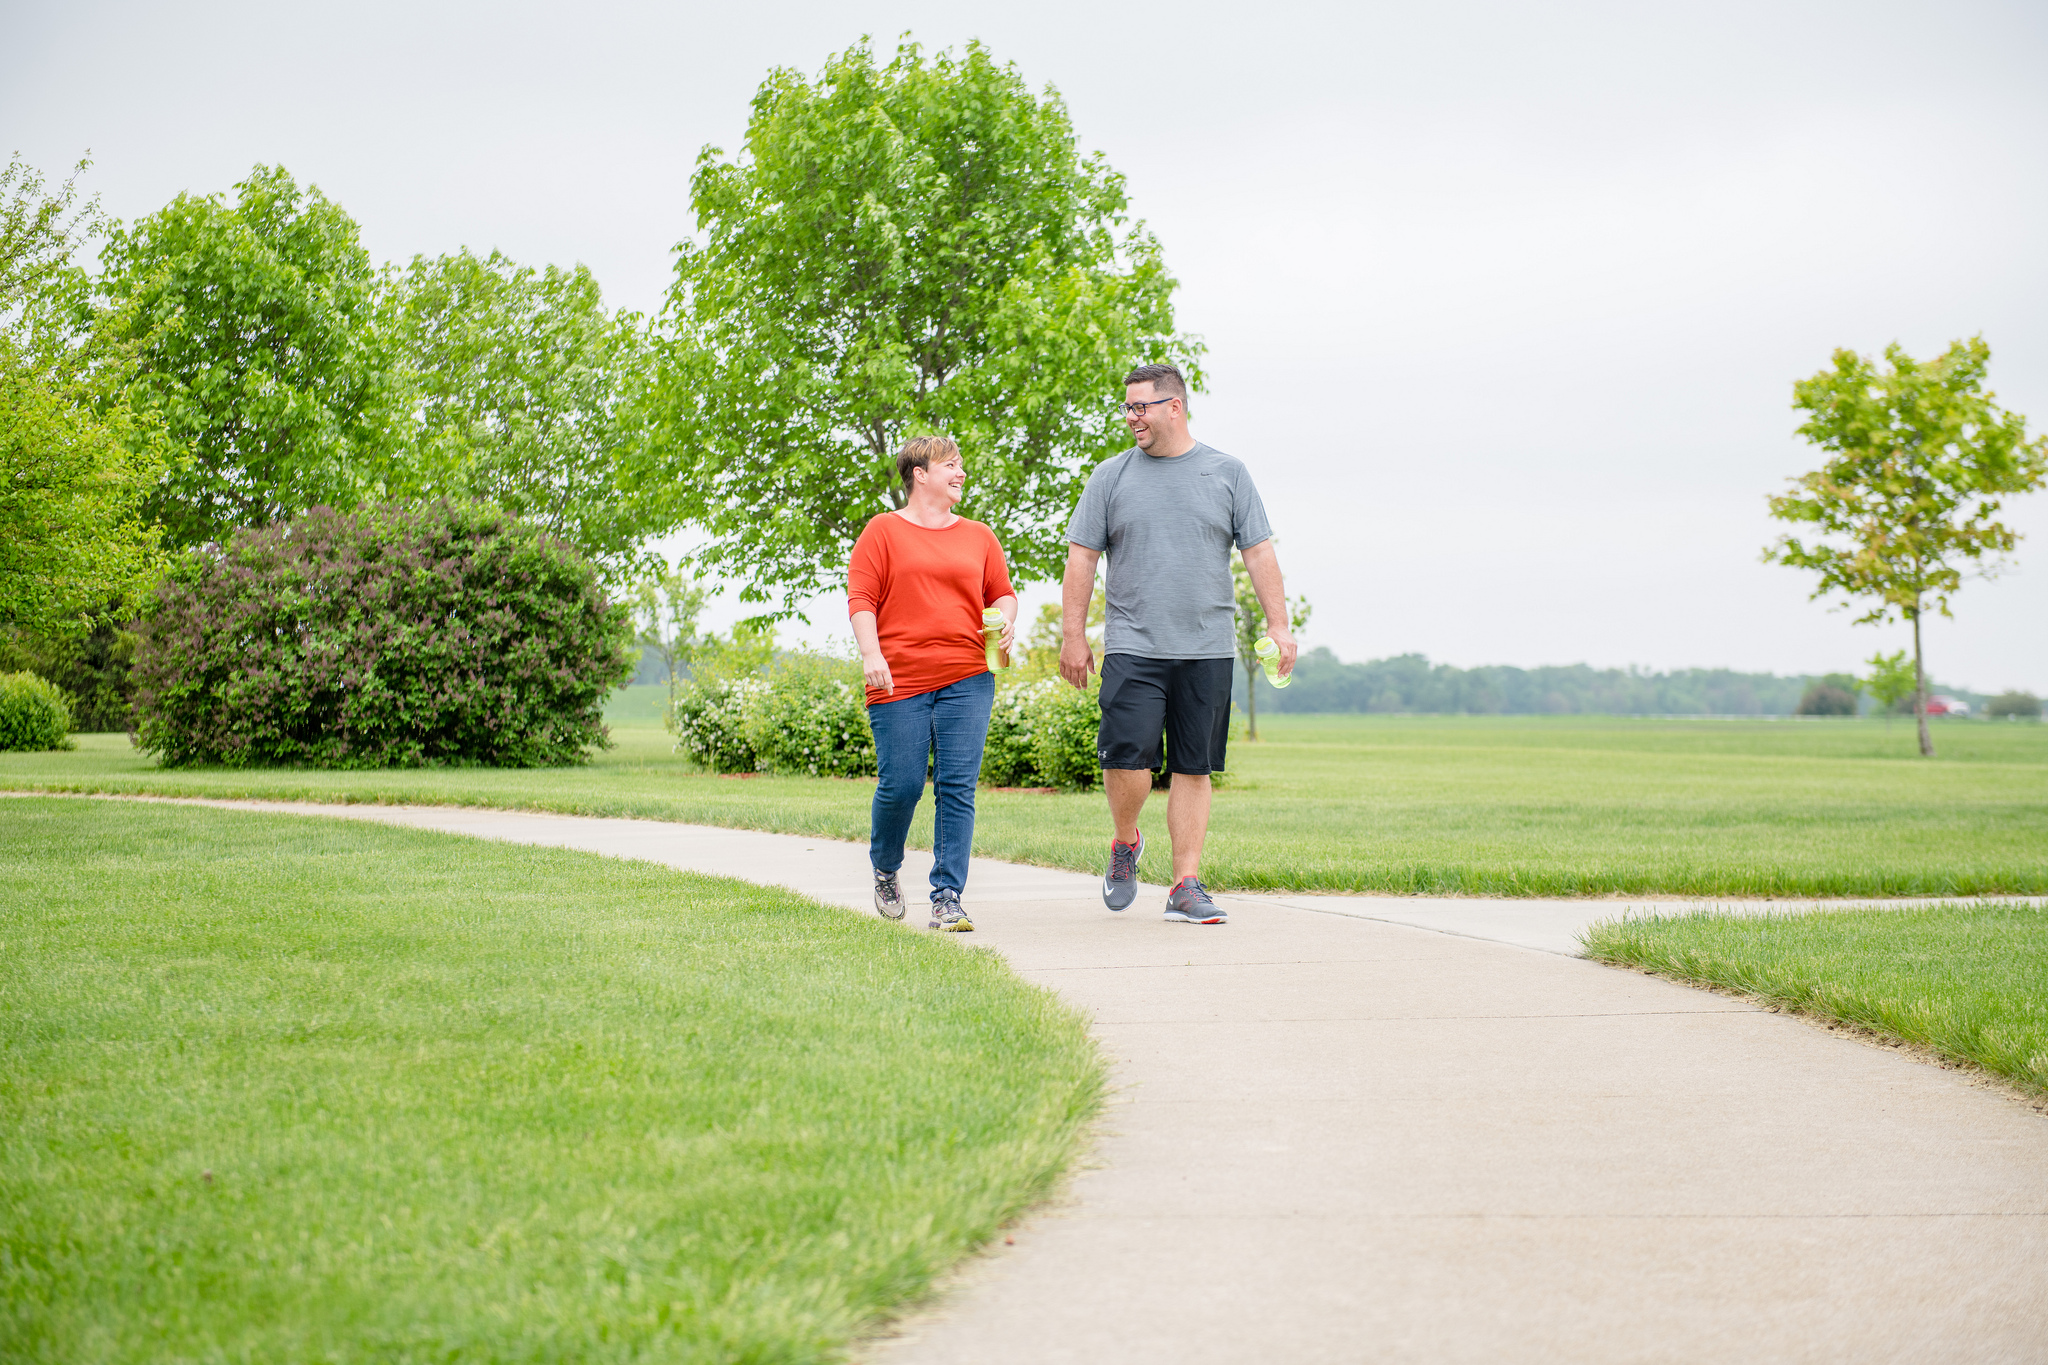 A study supported by the American Physical Therapy Association found light amounts of physical activity can have significant impacts on reducing the risk for cardiovascular disease. Photo credit: Joseph L. Murphy/Iowa Soybean Association